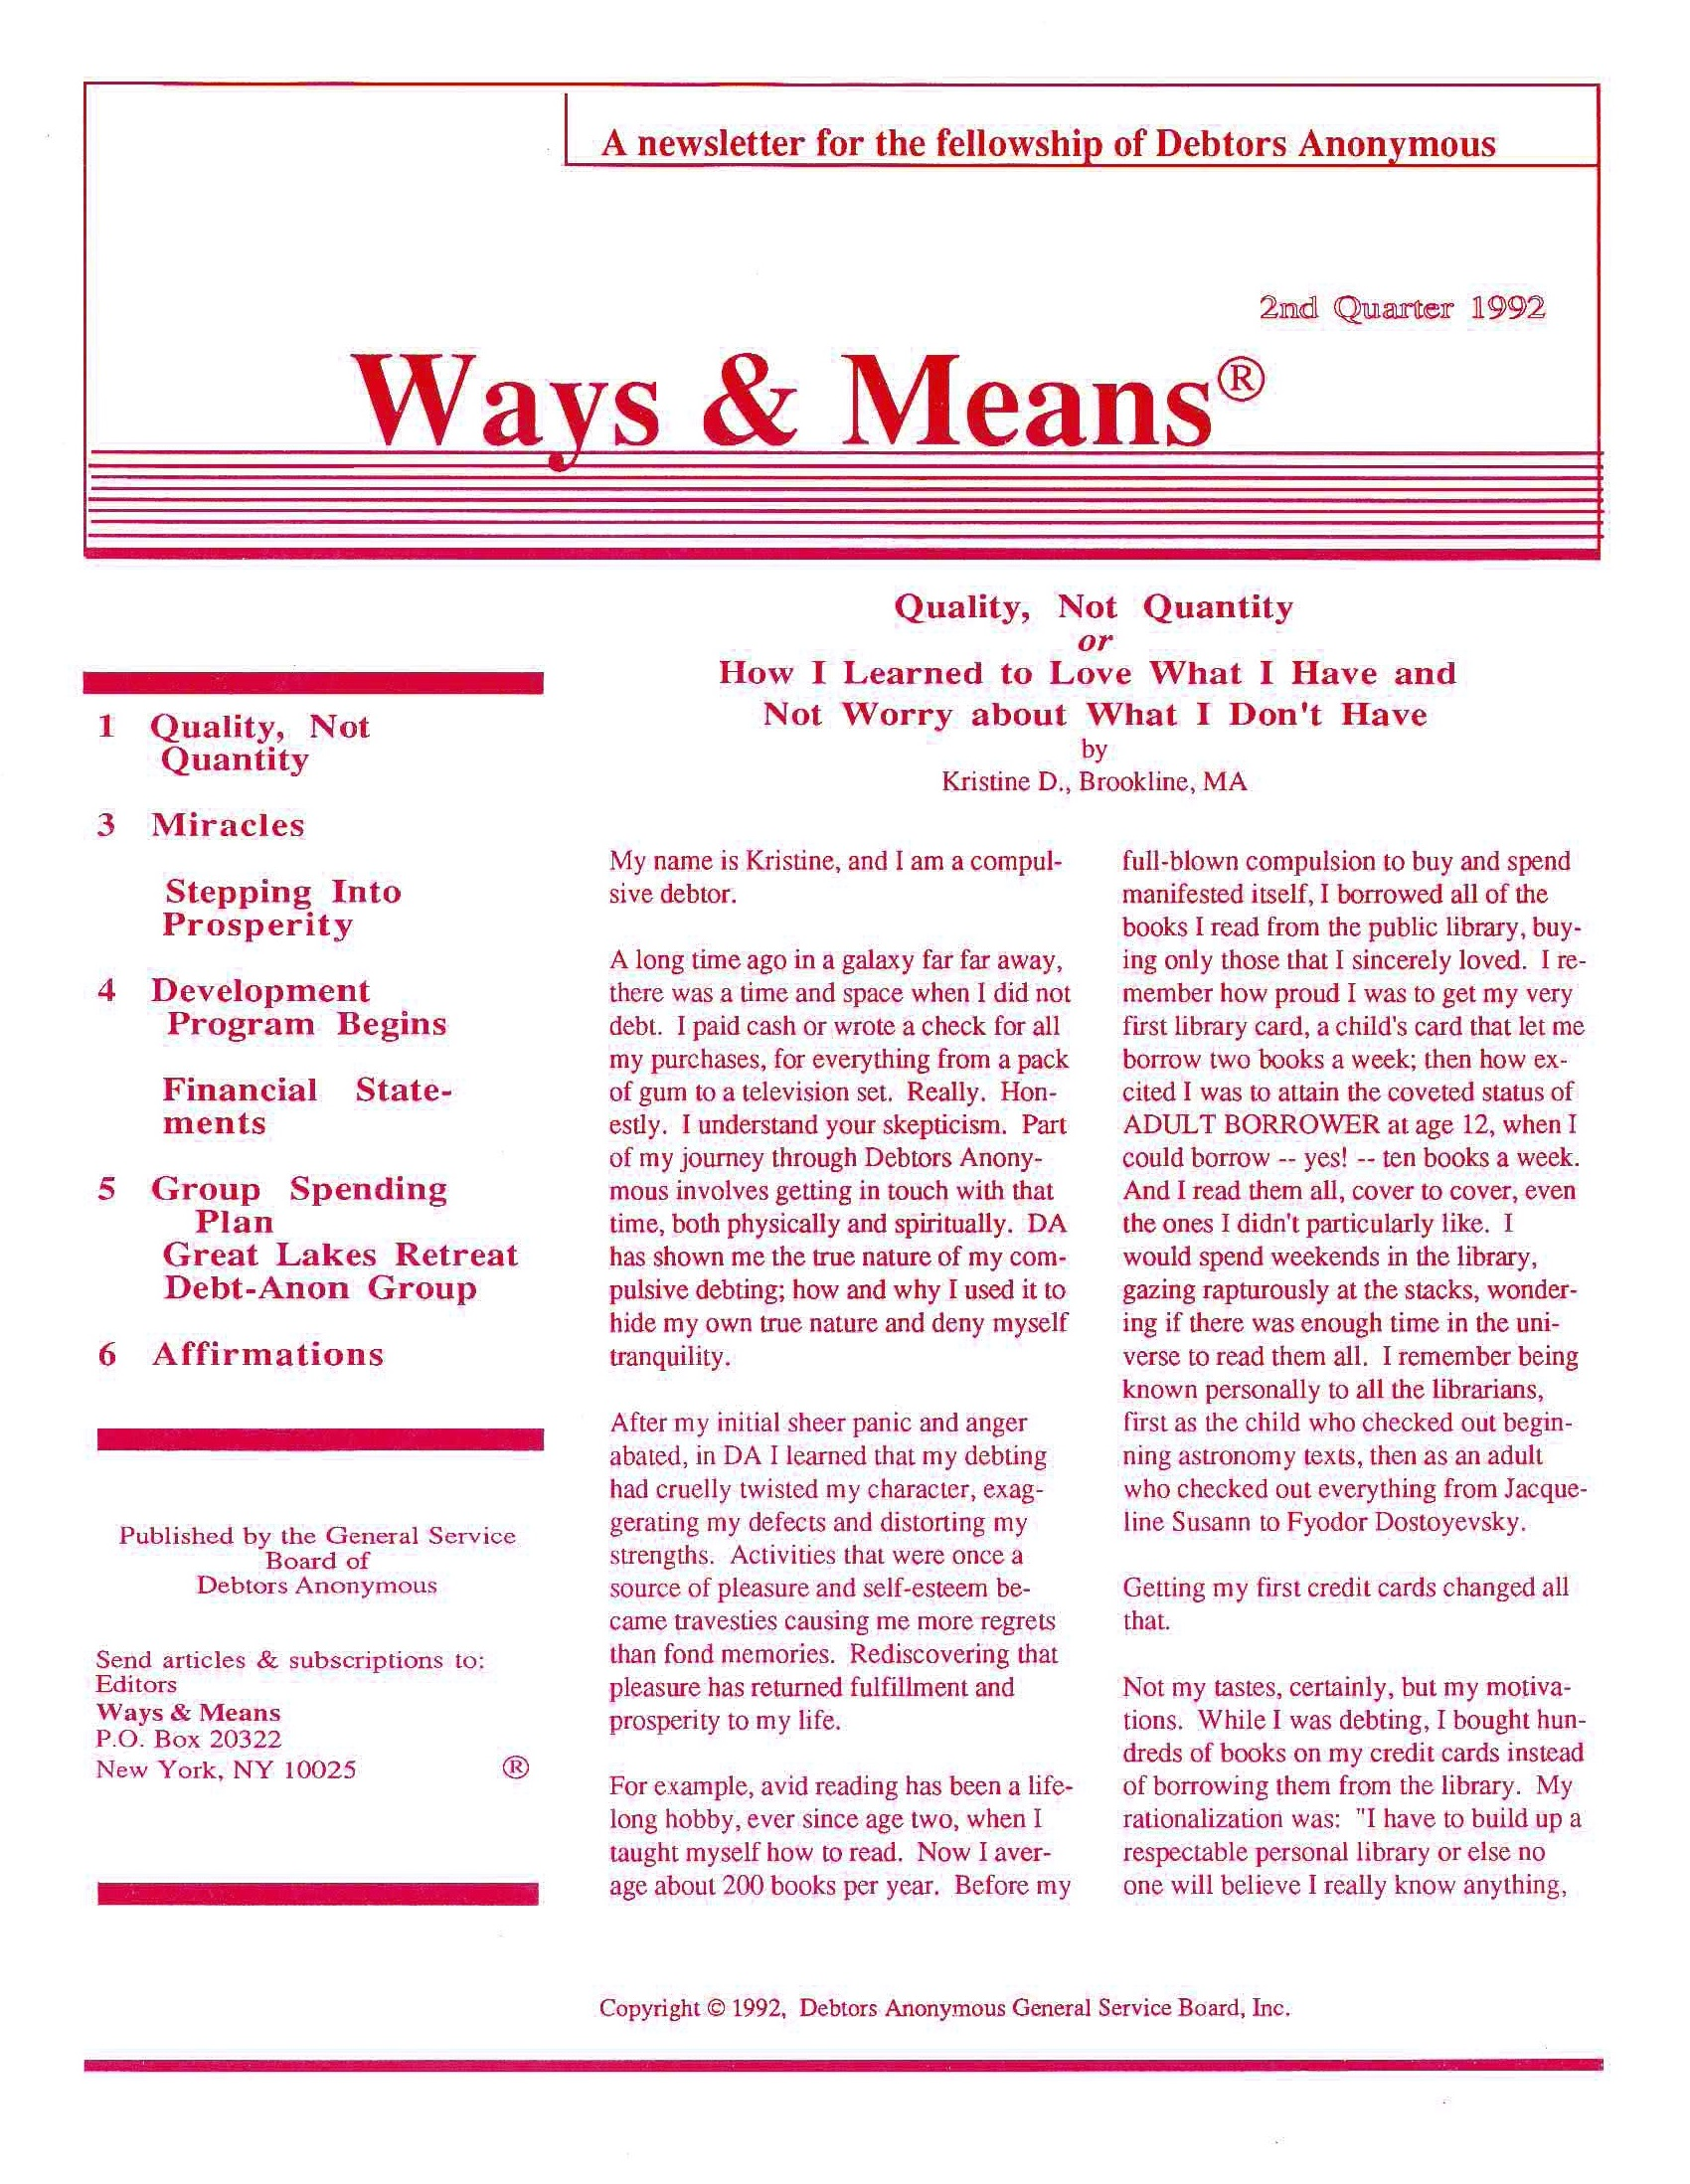 Ways & Means 2nd QTR 1992